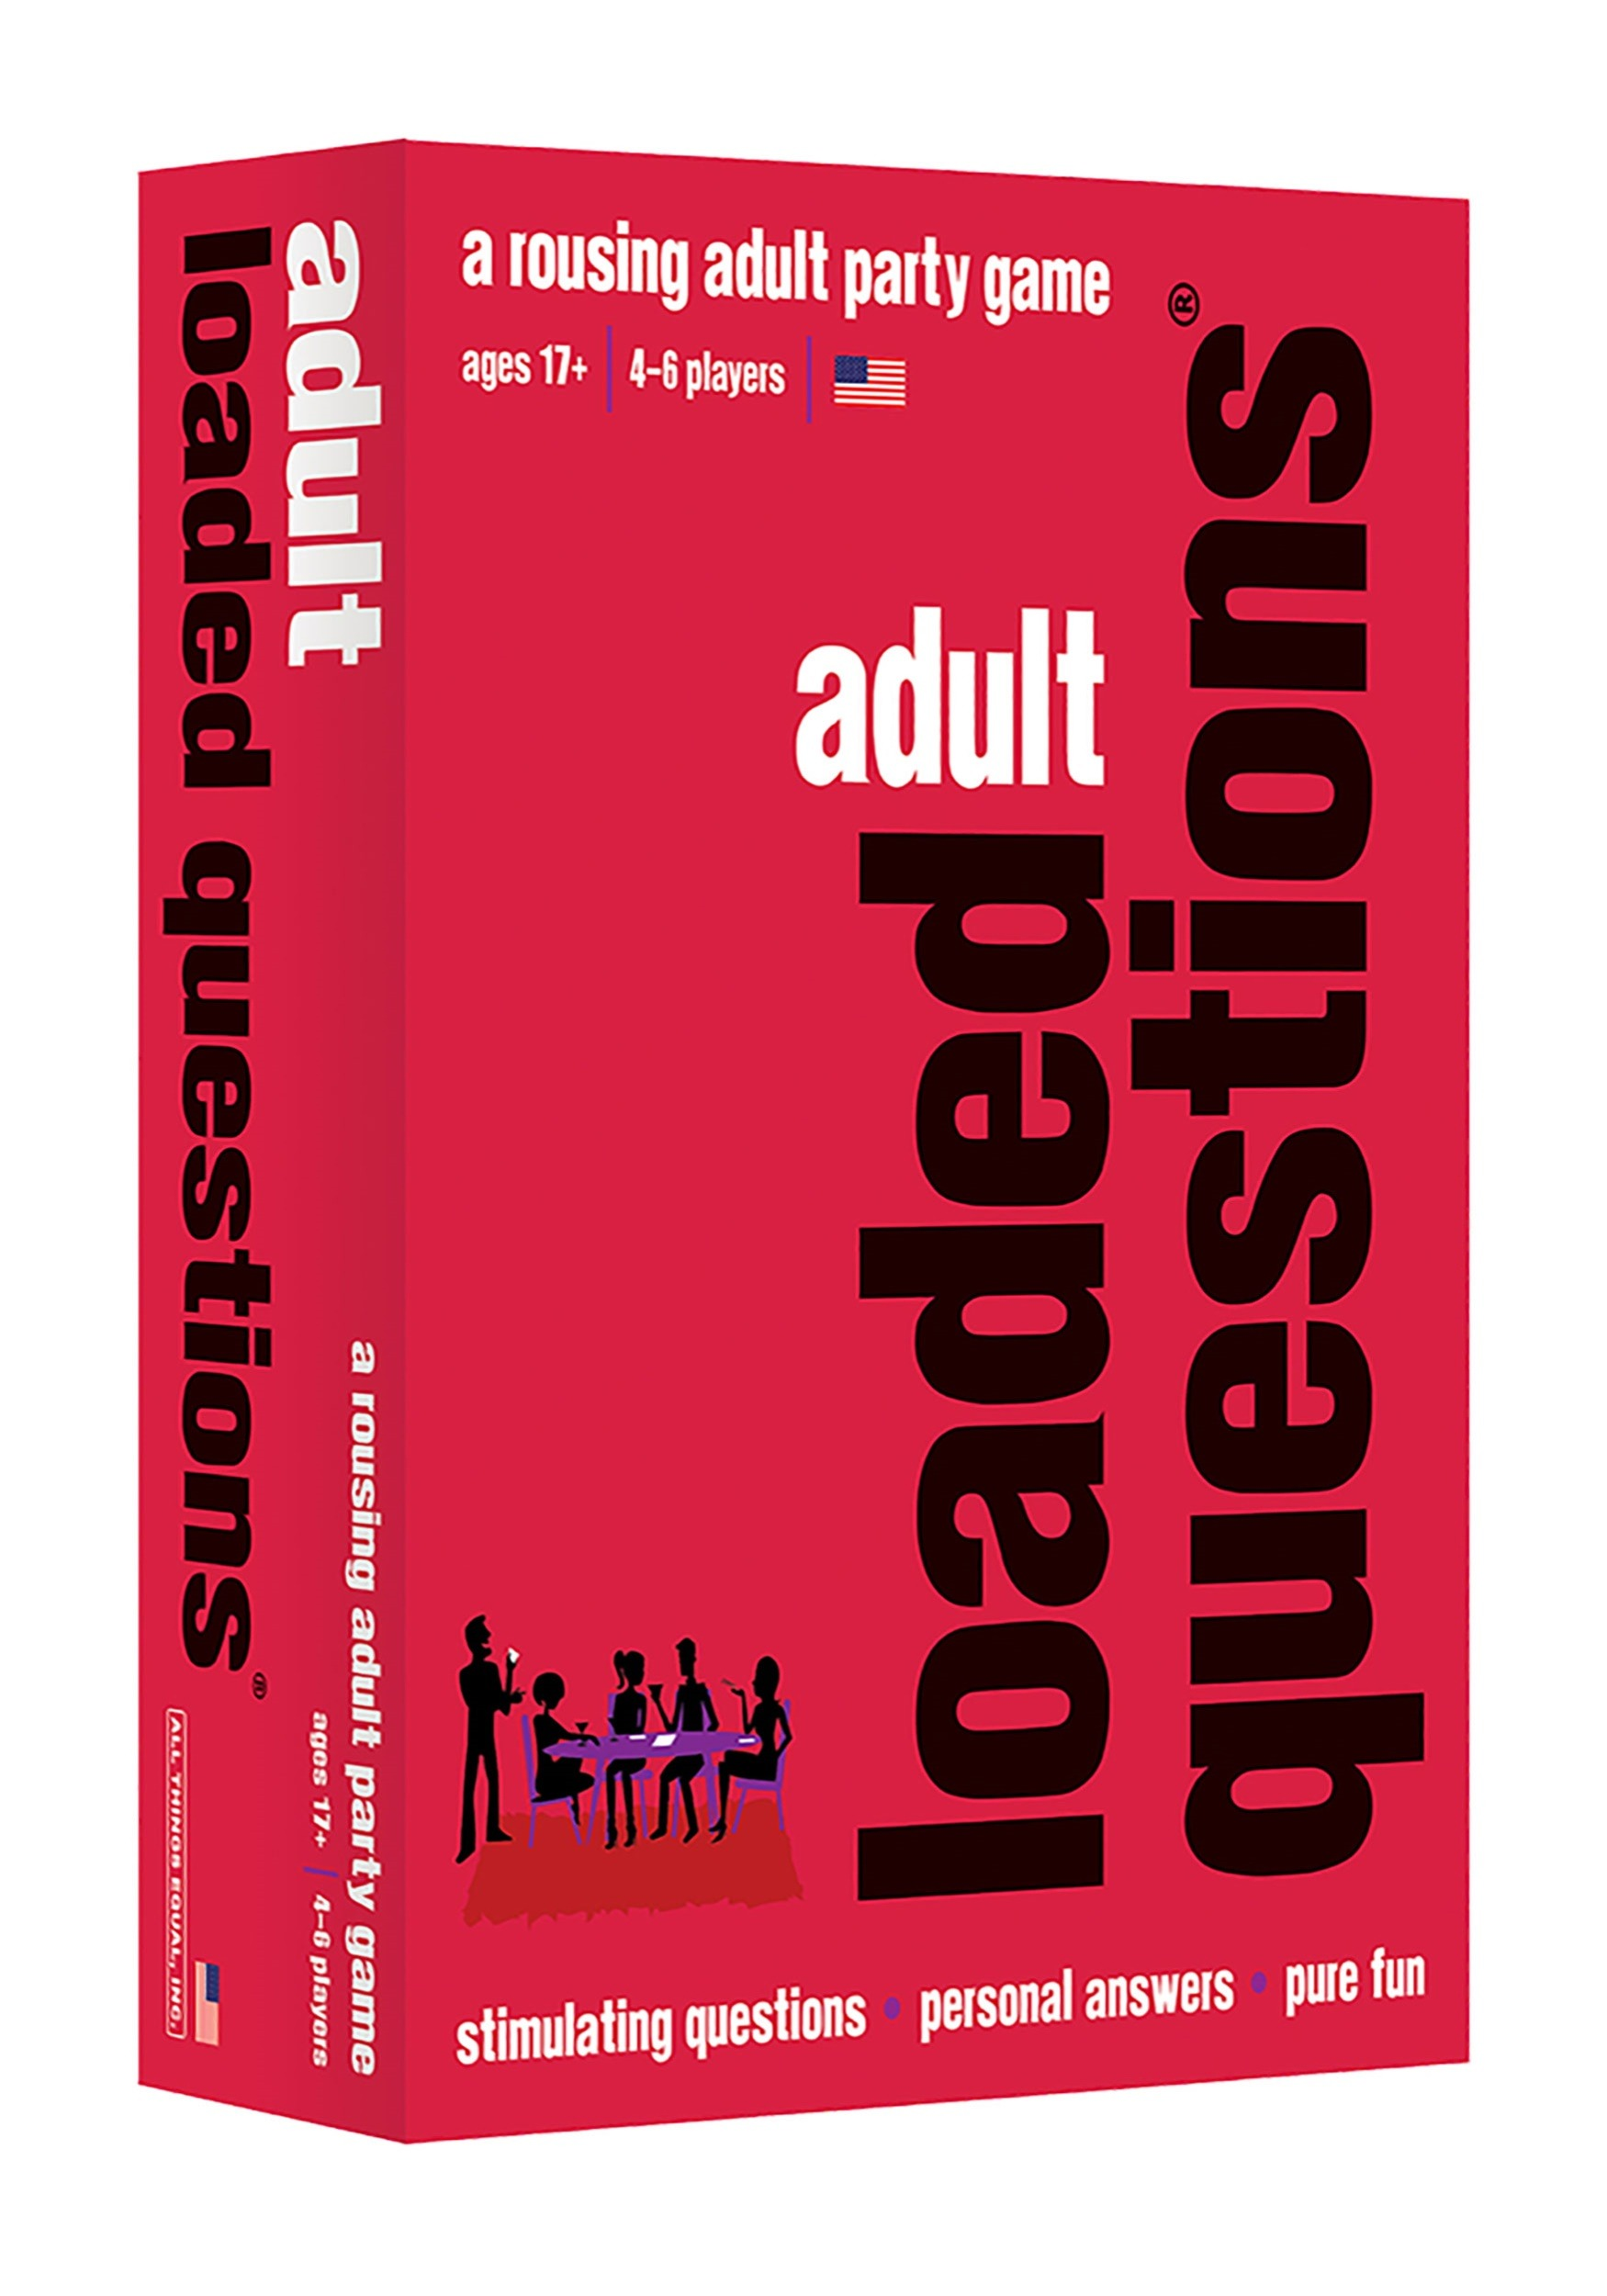 Loaded_Questions_Adult_Party_Game